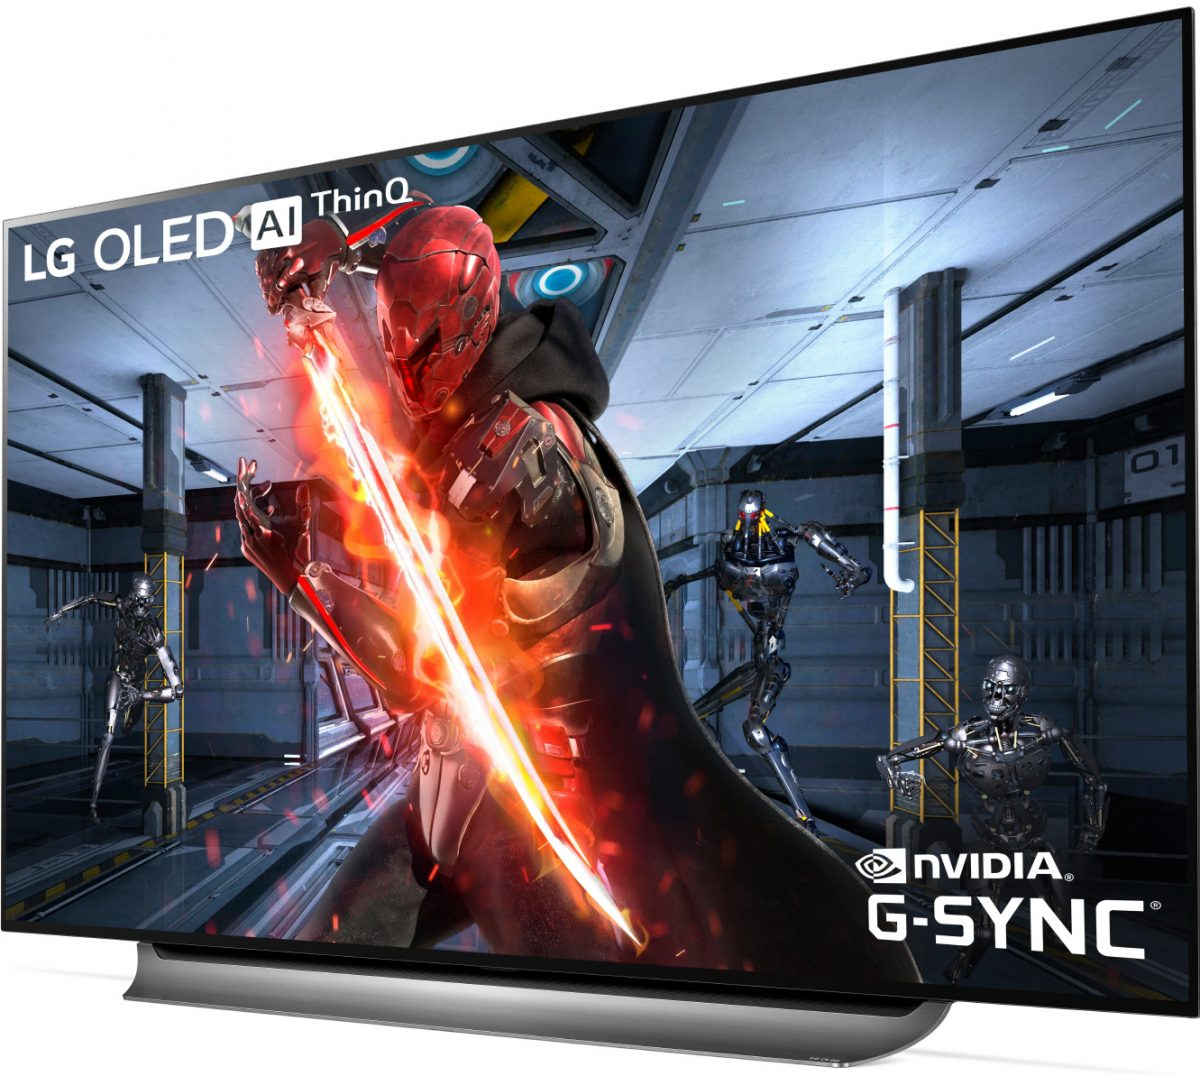 LG OLED TVs Get NVIDIA G-SYNC To Supersize Your Gaming